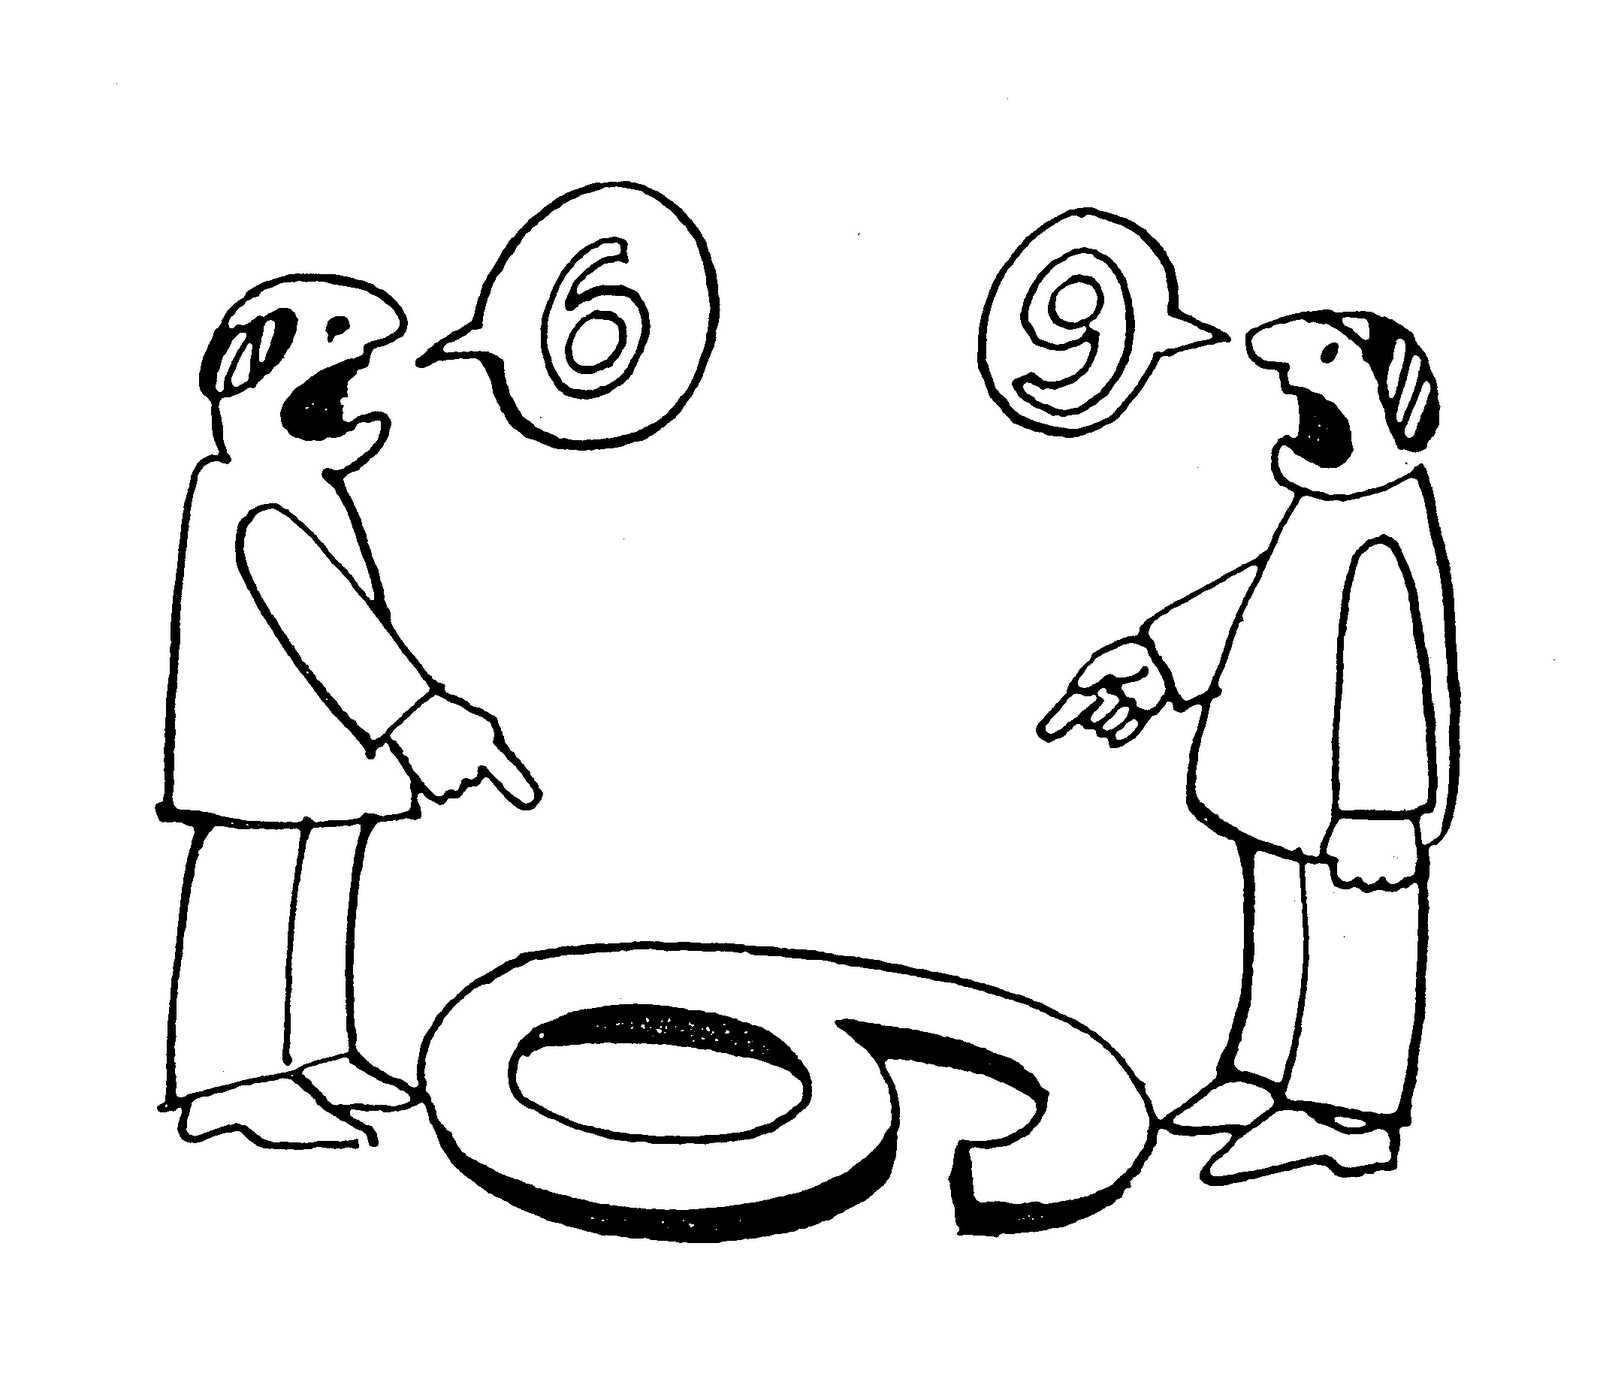 Empathy, listening & understanding other's points of view